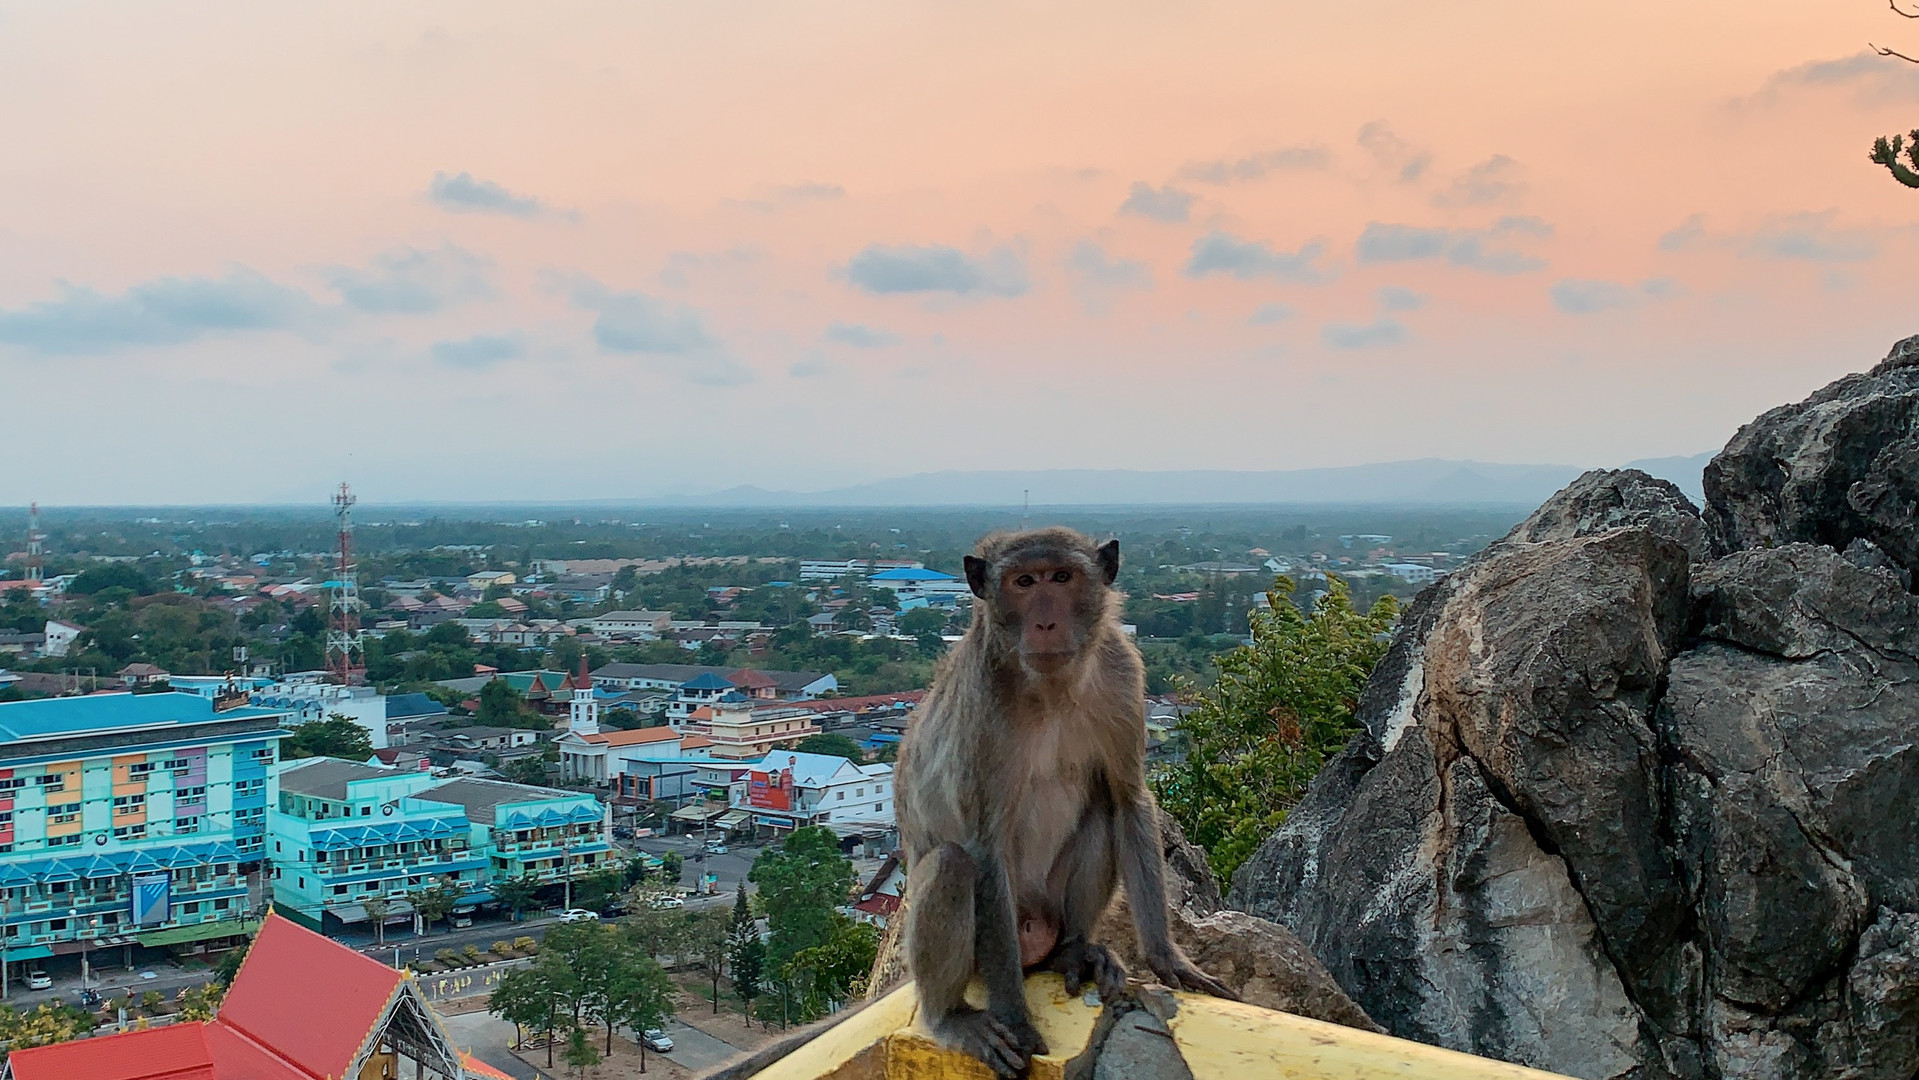 Chong Krajok Mountain   Chong Krajok Mountain - is a small mountain,  a way from Prachuap Khiri Khan, crossroads approximately 2 km, about  94 mters hight from sea level. Way up in front of Wat Thammikaram 2, have stair 396 steps to summit. On the top of  mount is enshrined the Buddha bones, on the way up, you will meet monkeys also sightseeing a beautiful view of the three bay town.